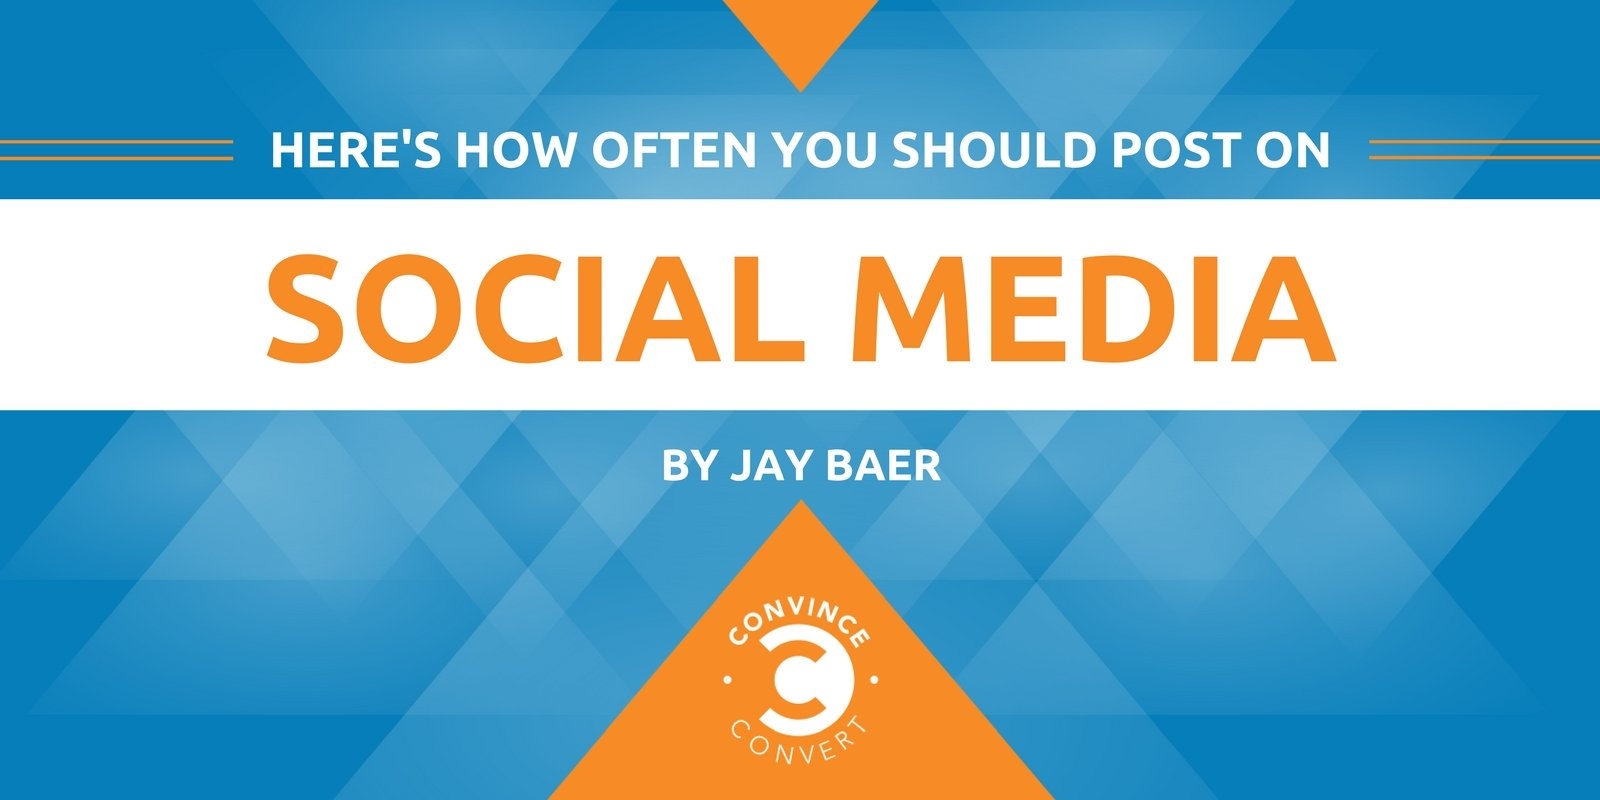 Here's How Often You Should Post on Social Media